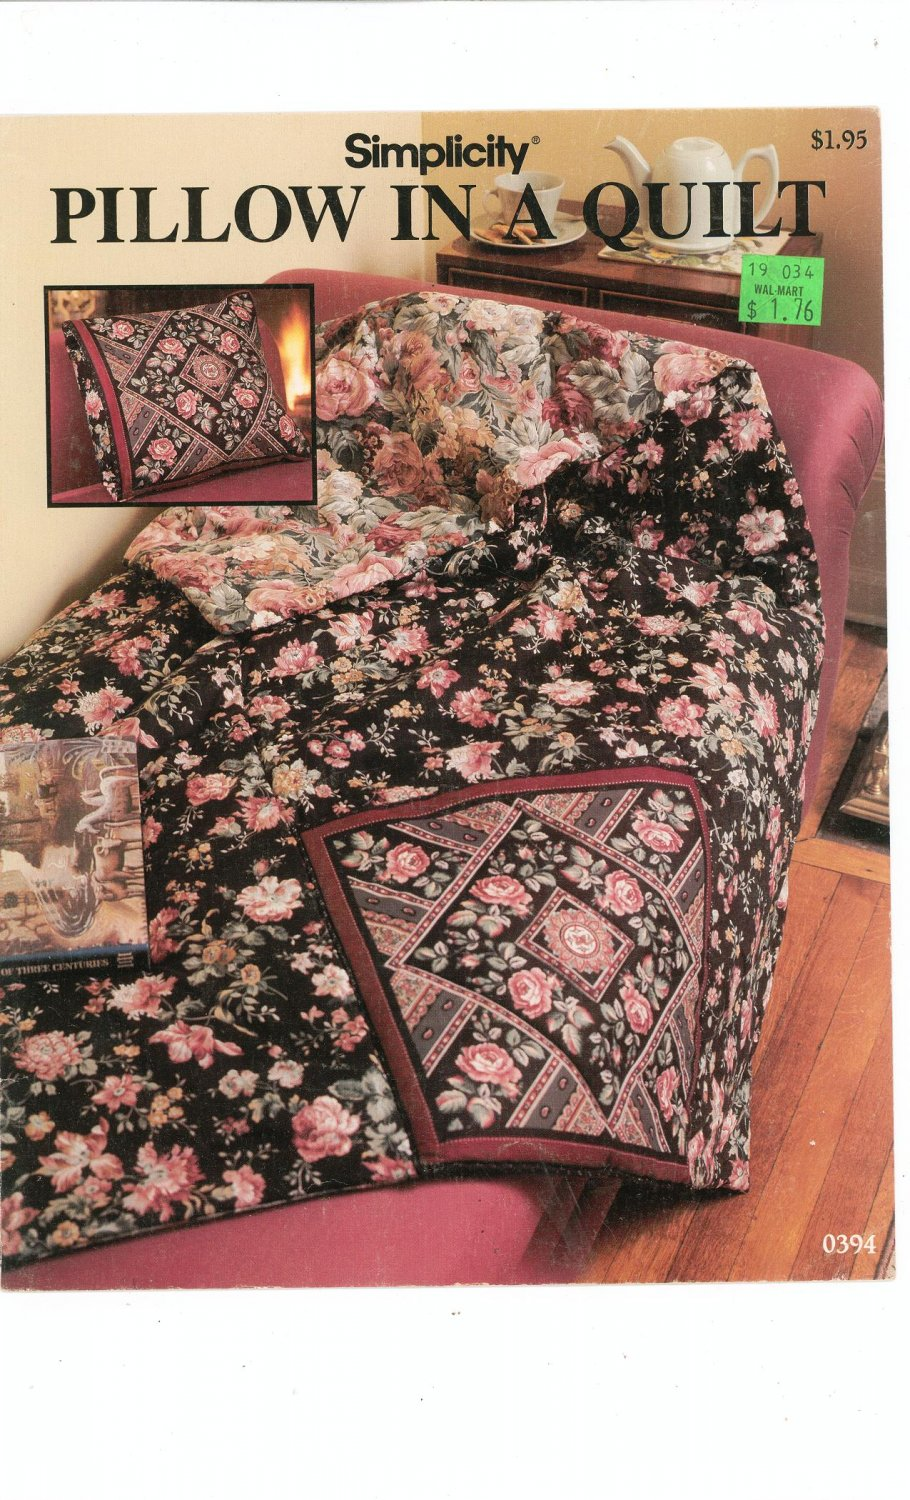 Simplicity Pillow In A Quilt Number 0394